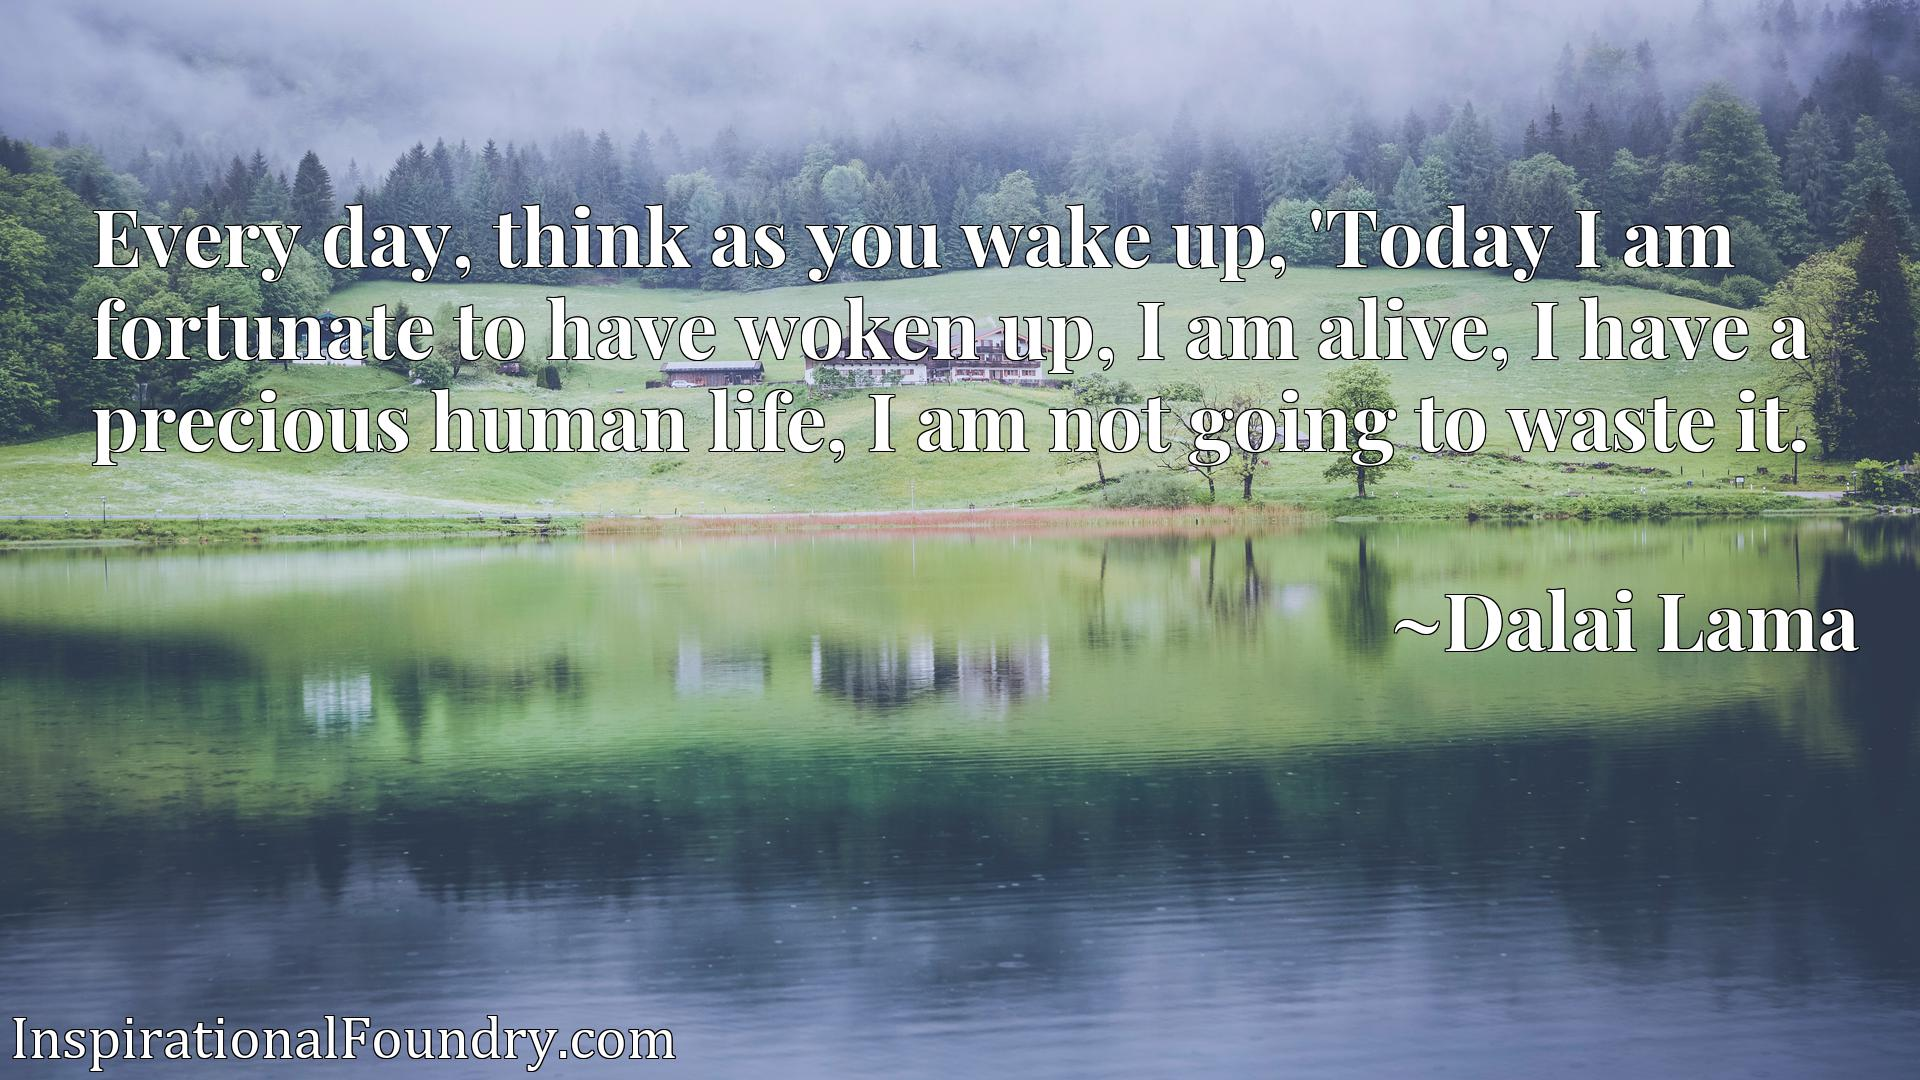 Every day, think as you wake up, 'Today I am fortunate to have woken up, I am alive, I have a precious human life, I am not going to waste it.